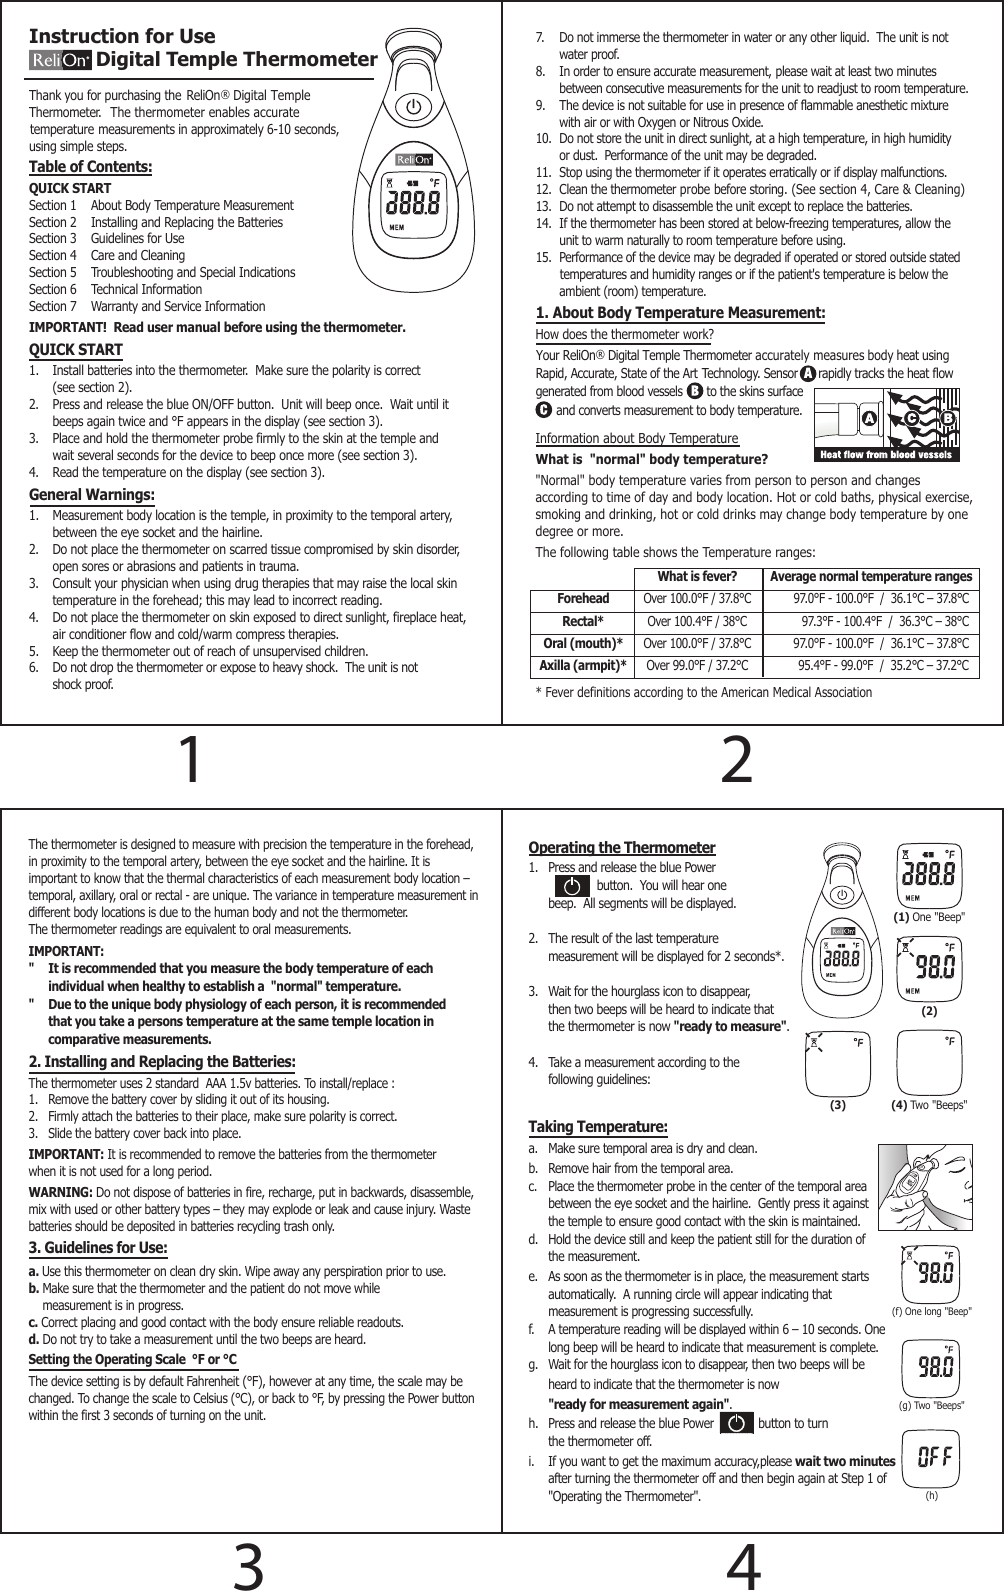 Acurite Thermometer Manual Manual Guide